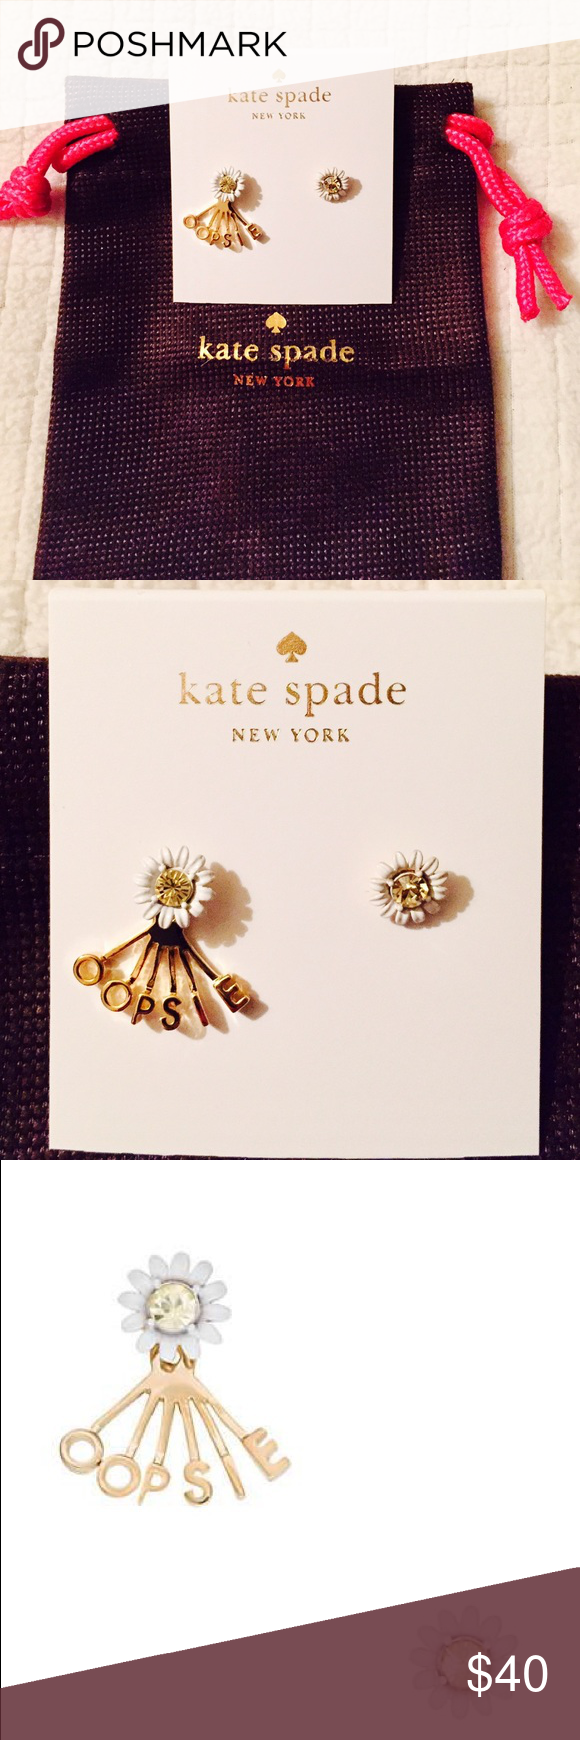 Kate Spade 14k Gold Plated Oopsie Daisy Studs Brand New With Tag And